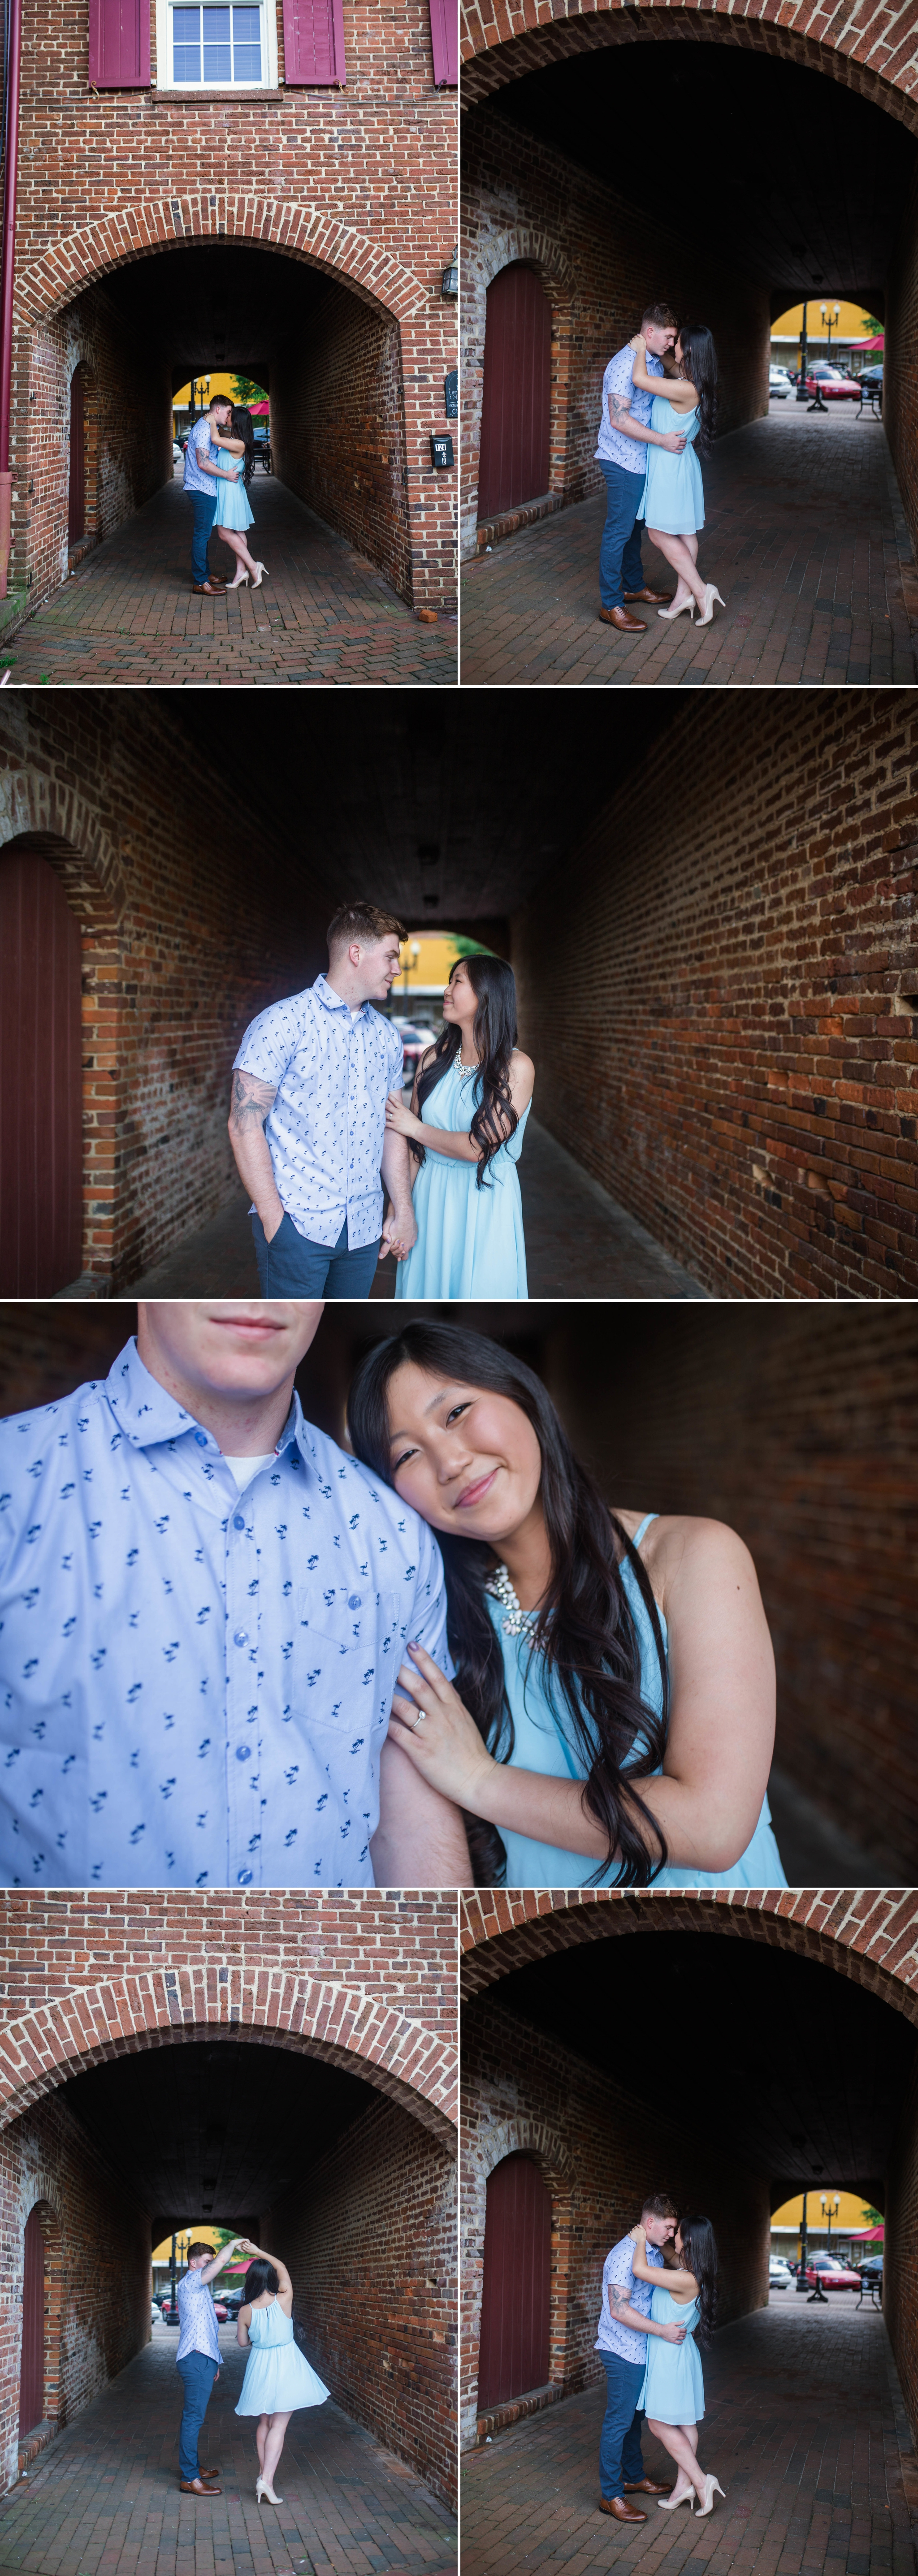 Leanne + Blake - Engagement Photography Session in Downtown Fayetteville, North Carolina